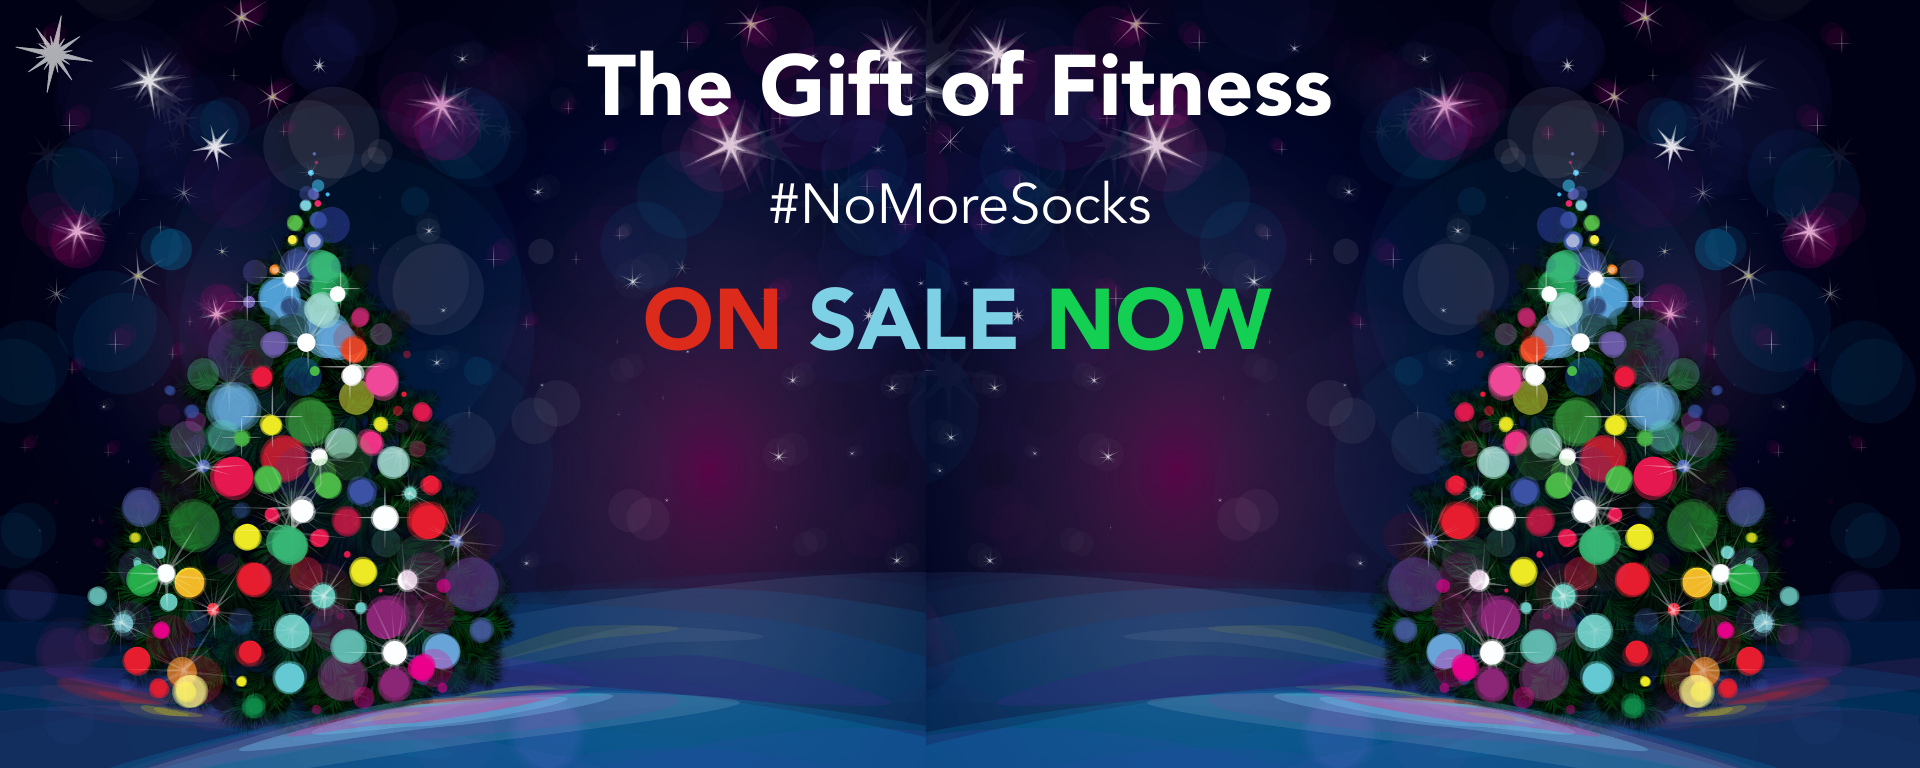 1 - The gift of fitness